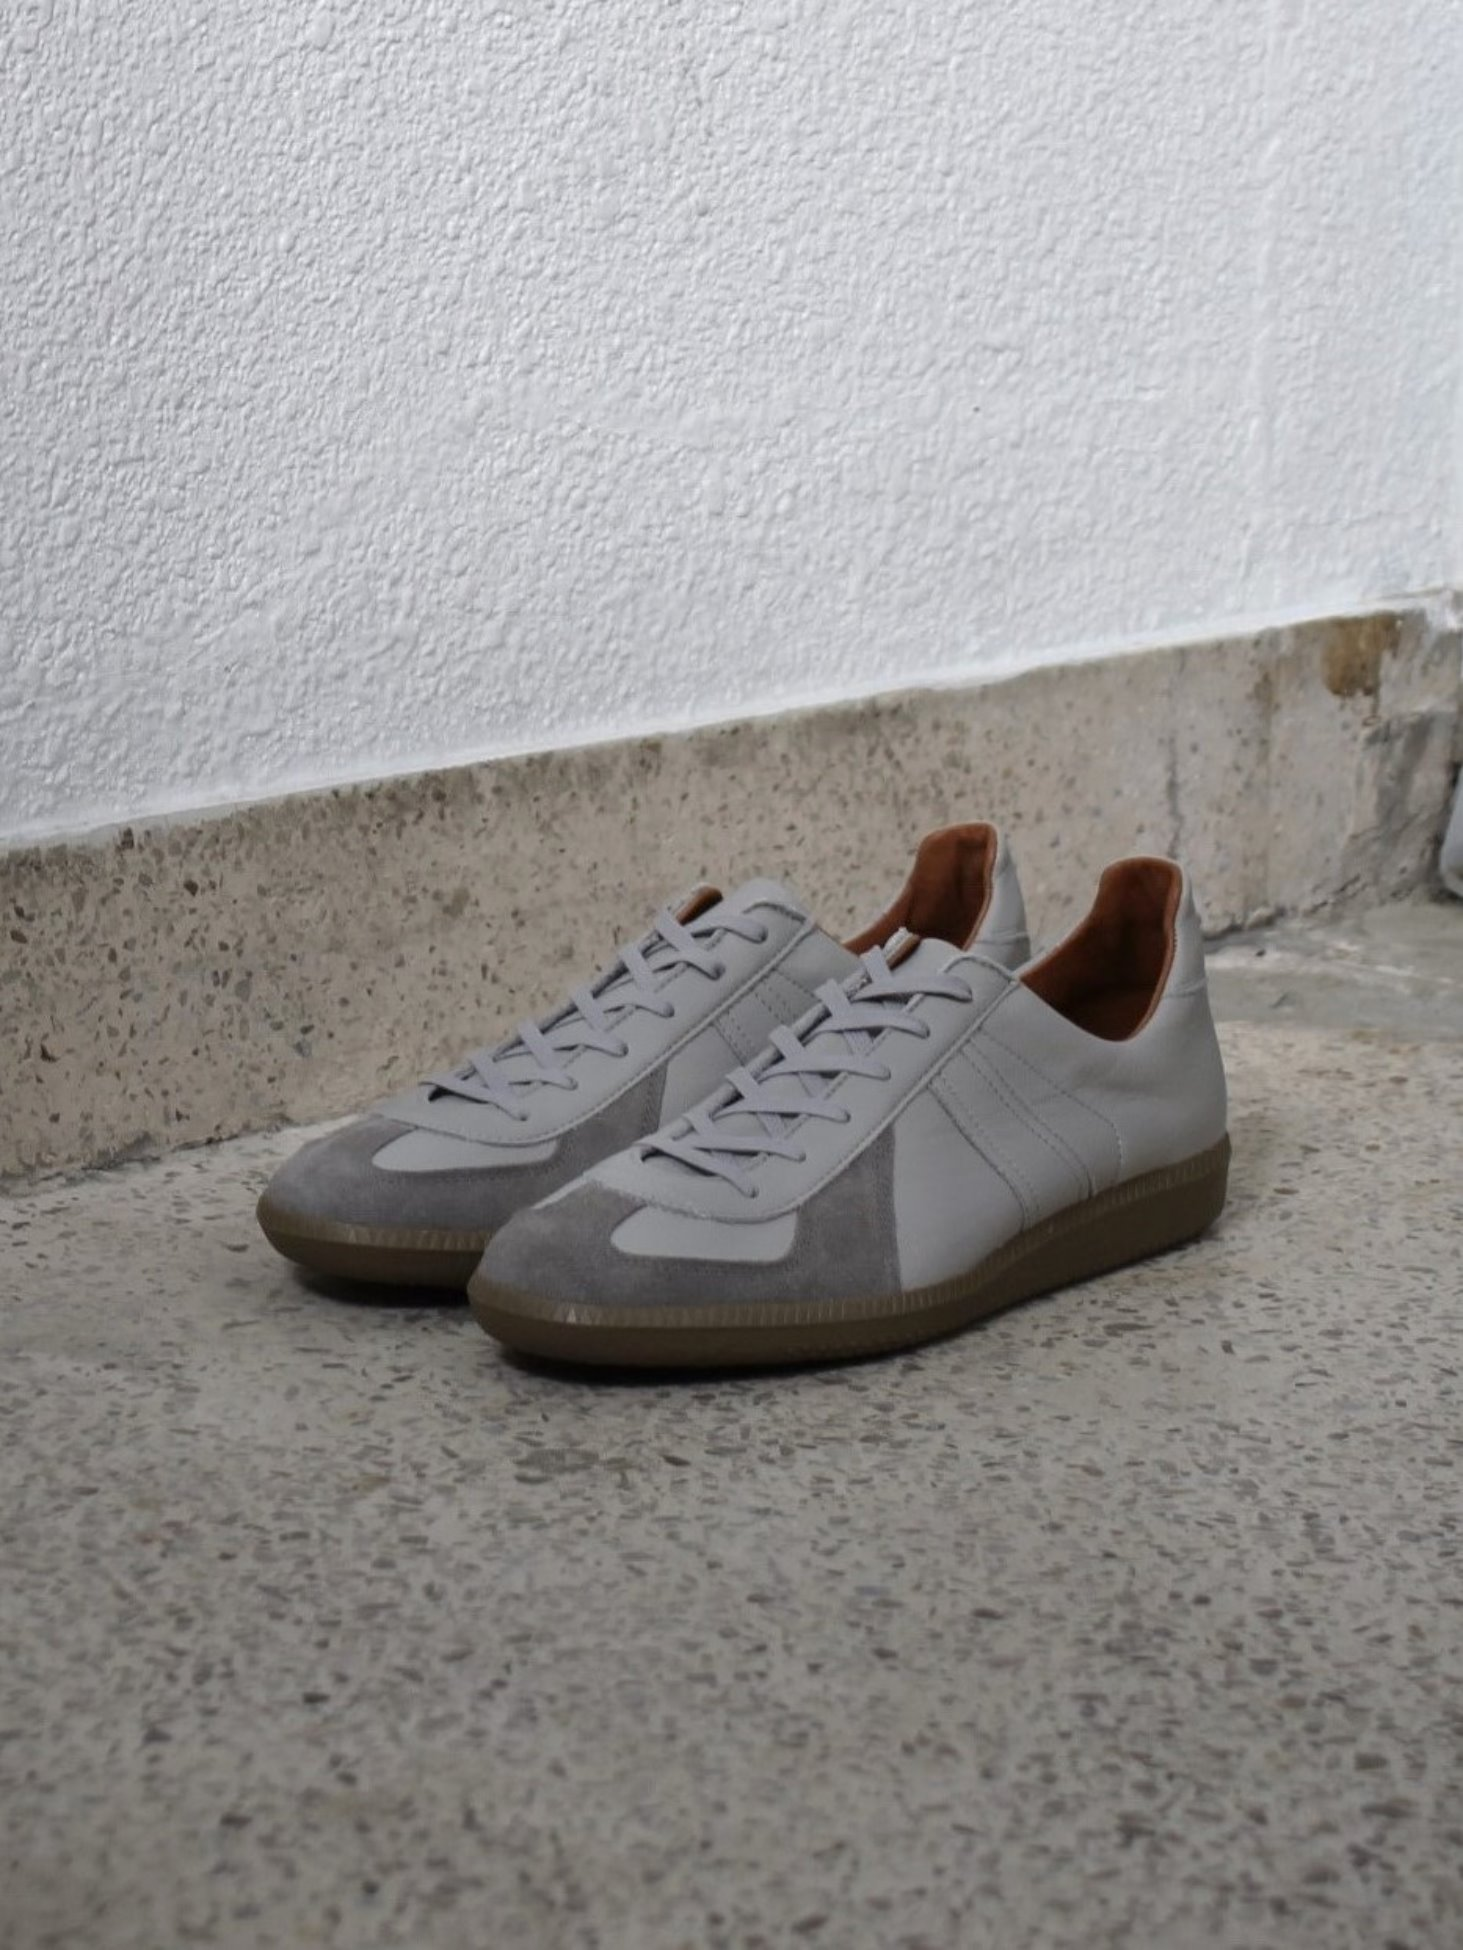 [Reproduction of Found] German Military Trainer 1700L - Light Grey